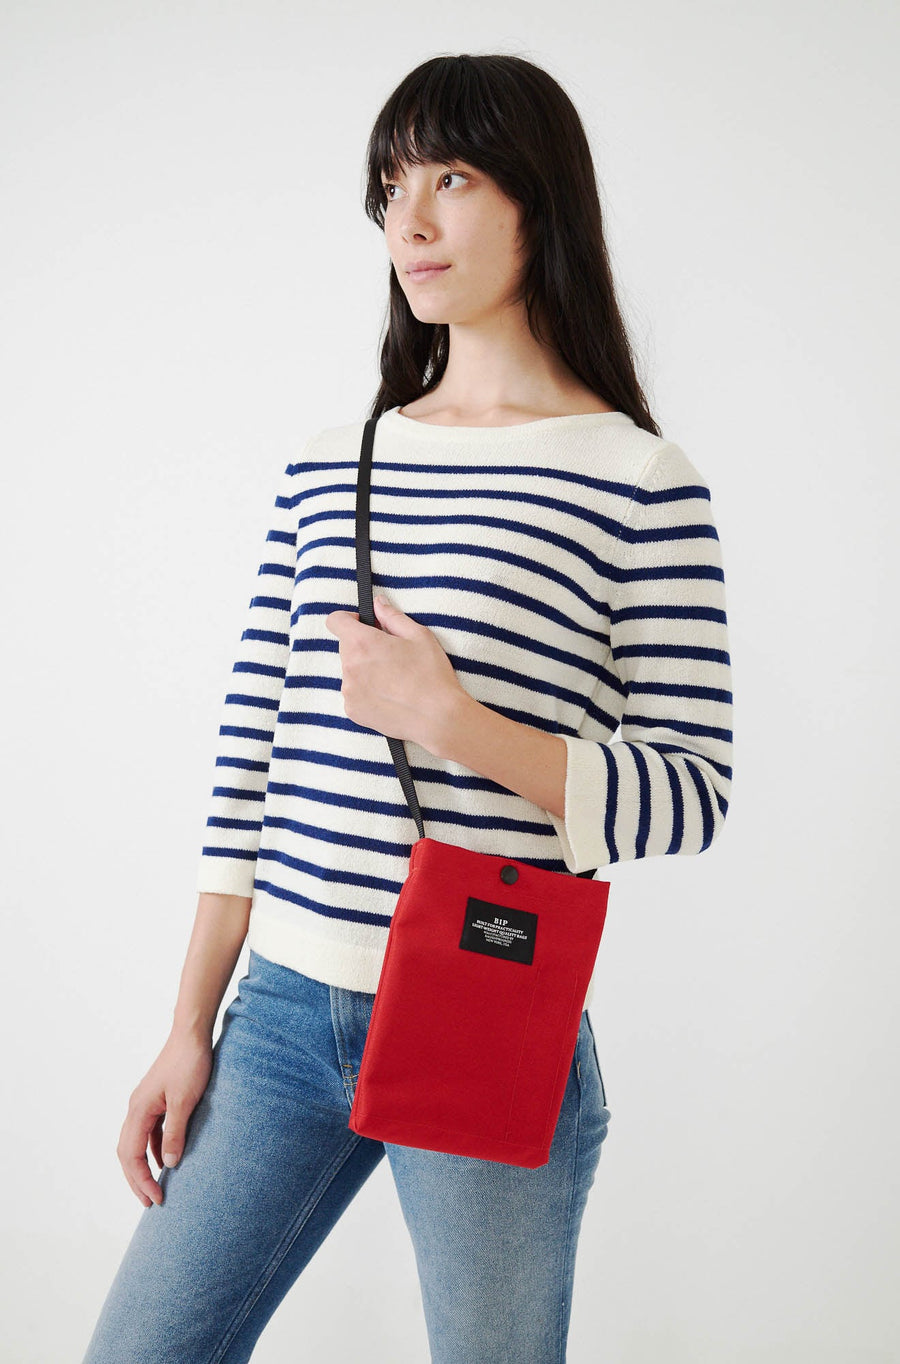 Passport Shoulder Bag-red